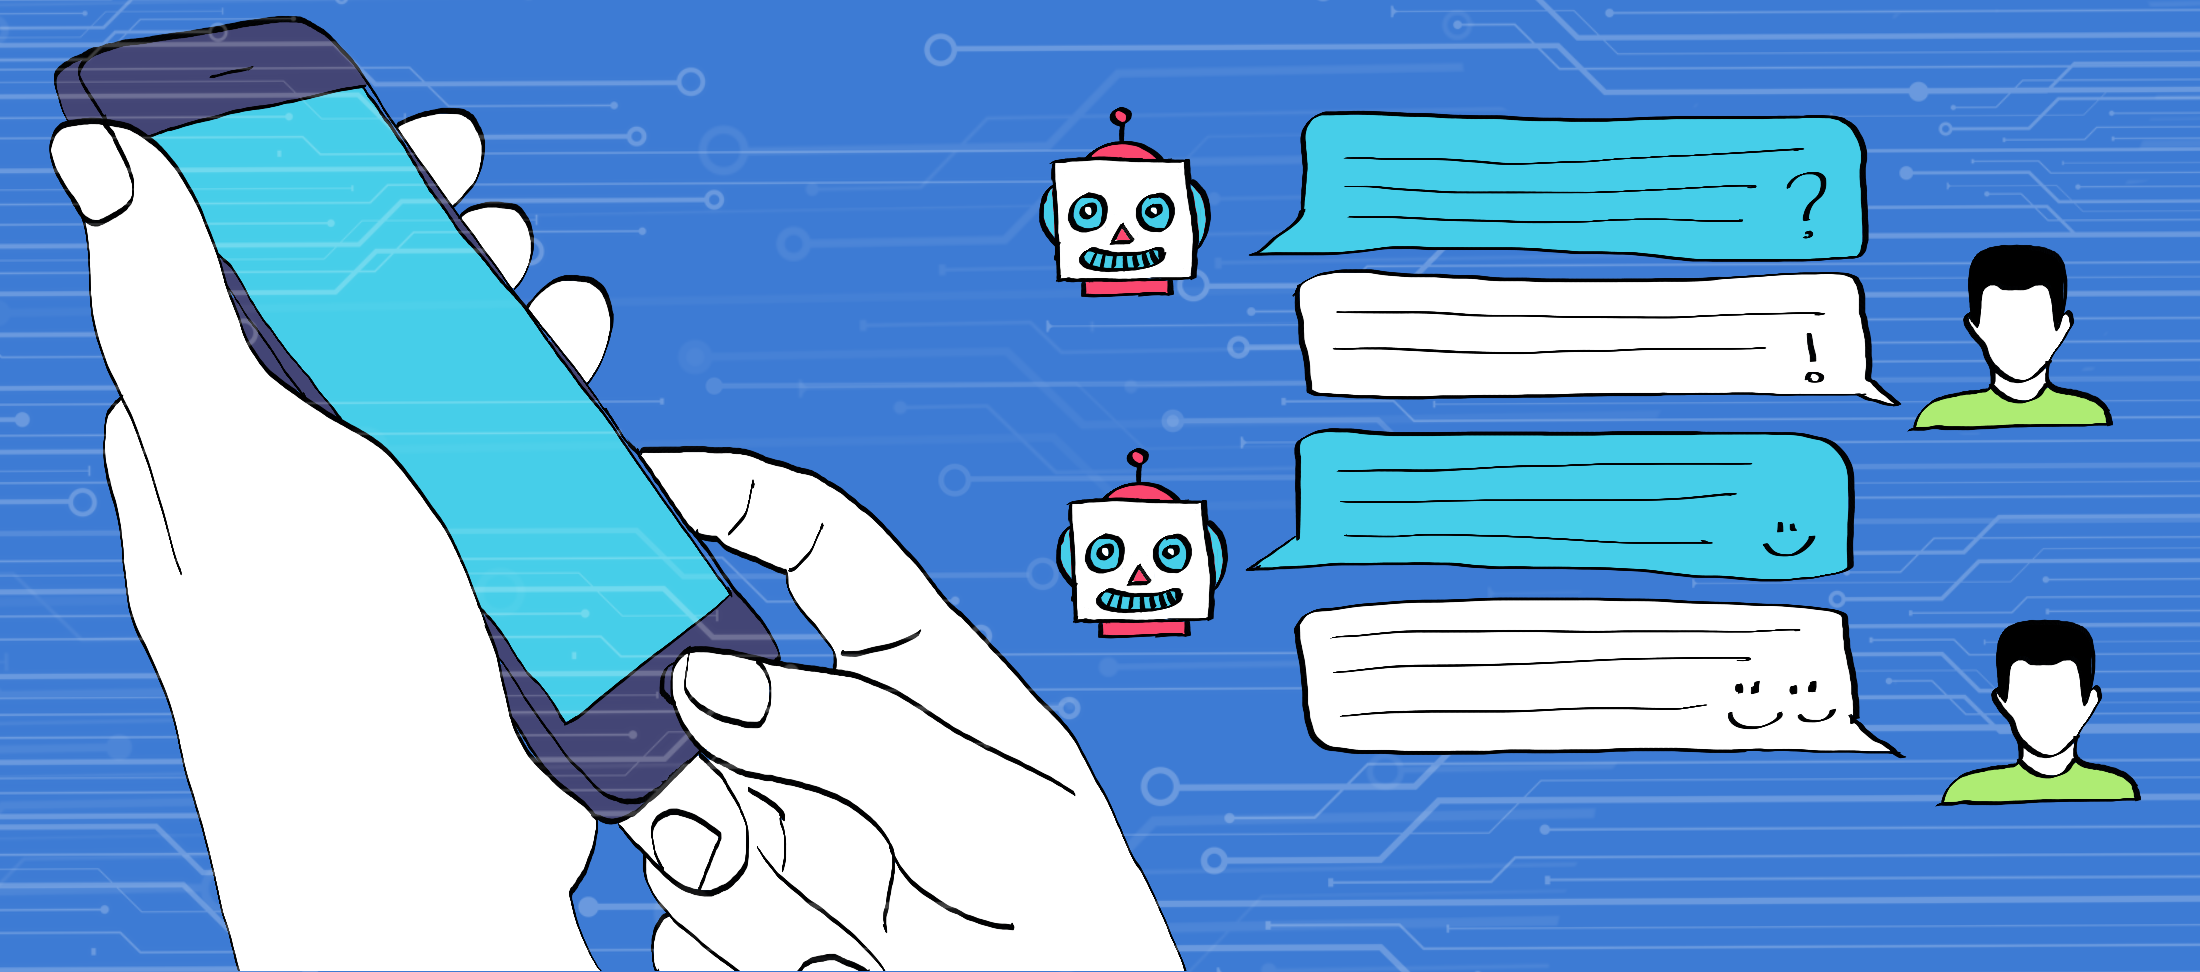 How to use chatbots to grow your business - A Beginner's Guide